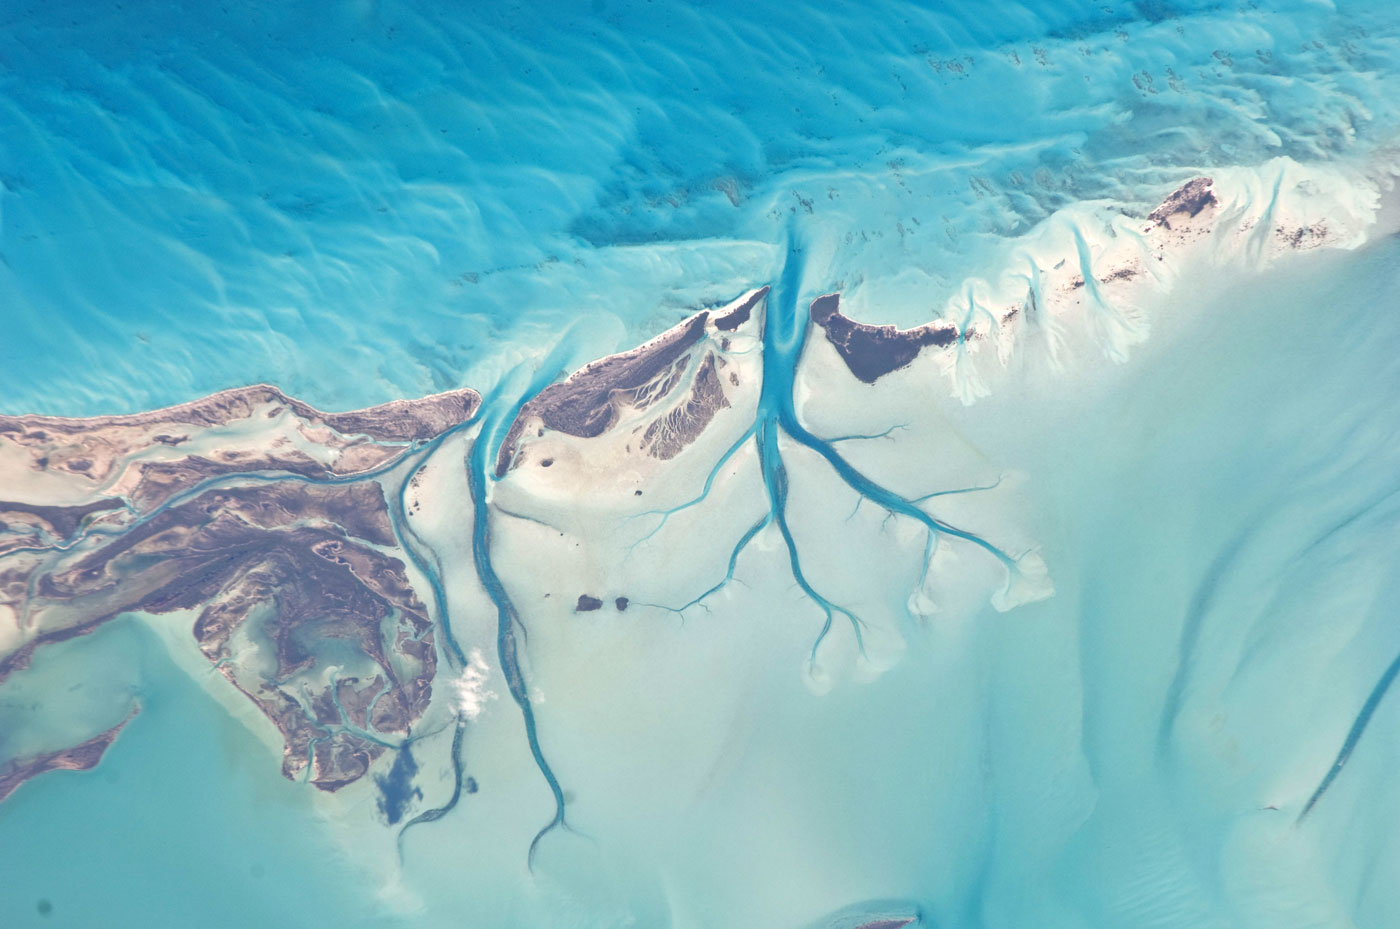 Bahamas. Source: NASA (CC)